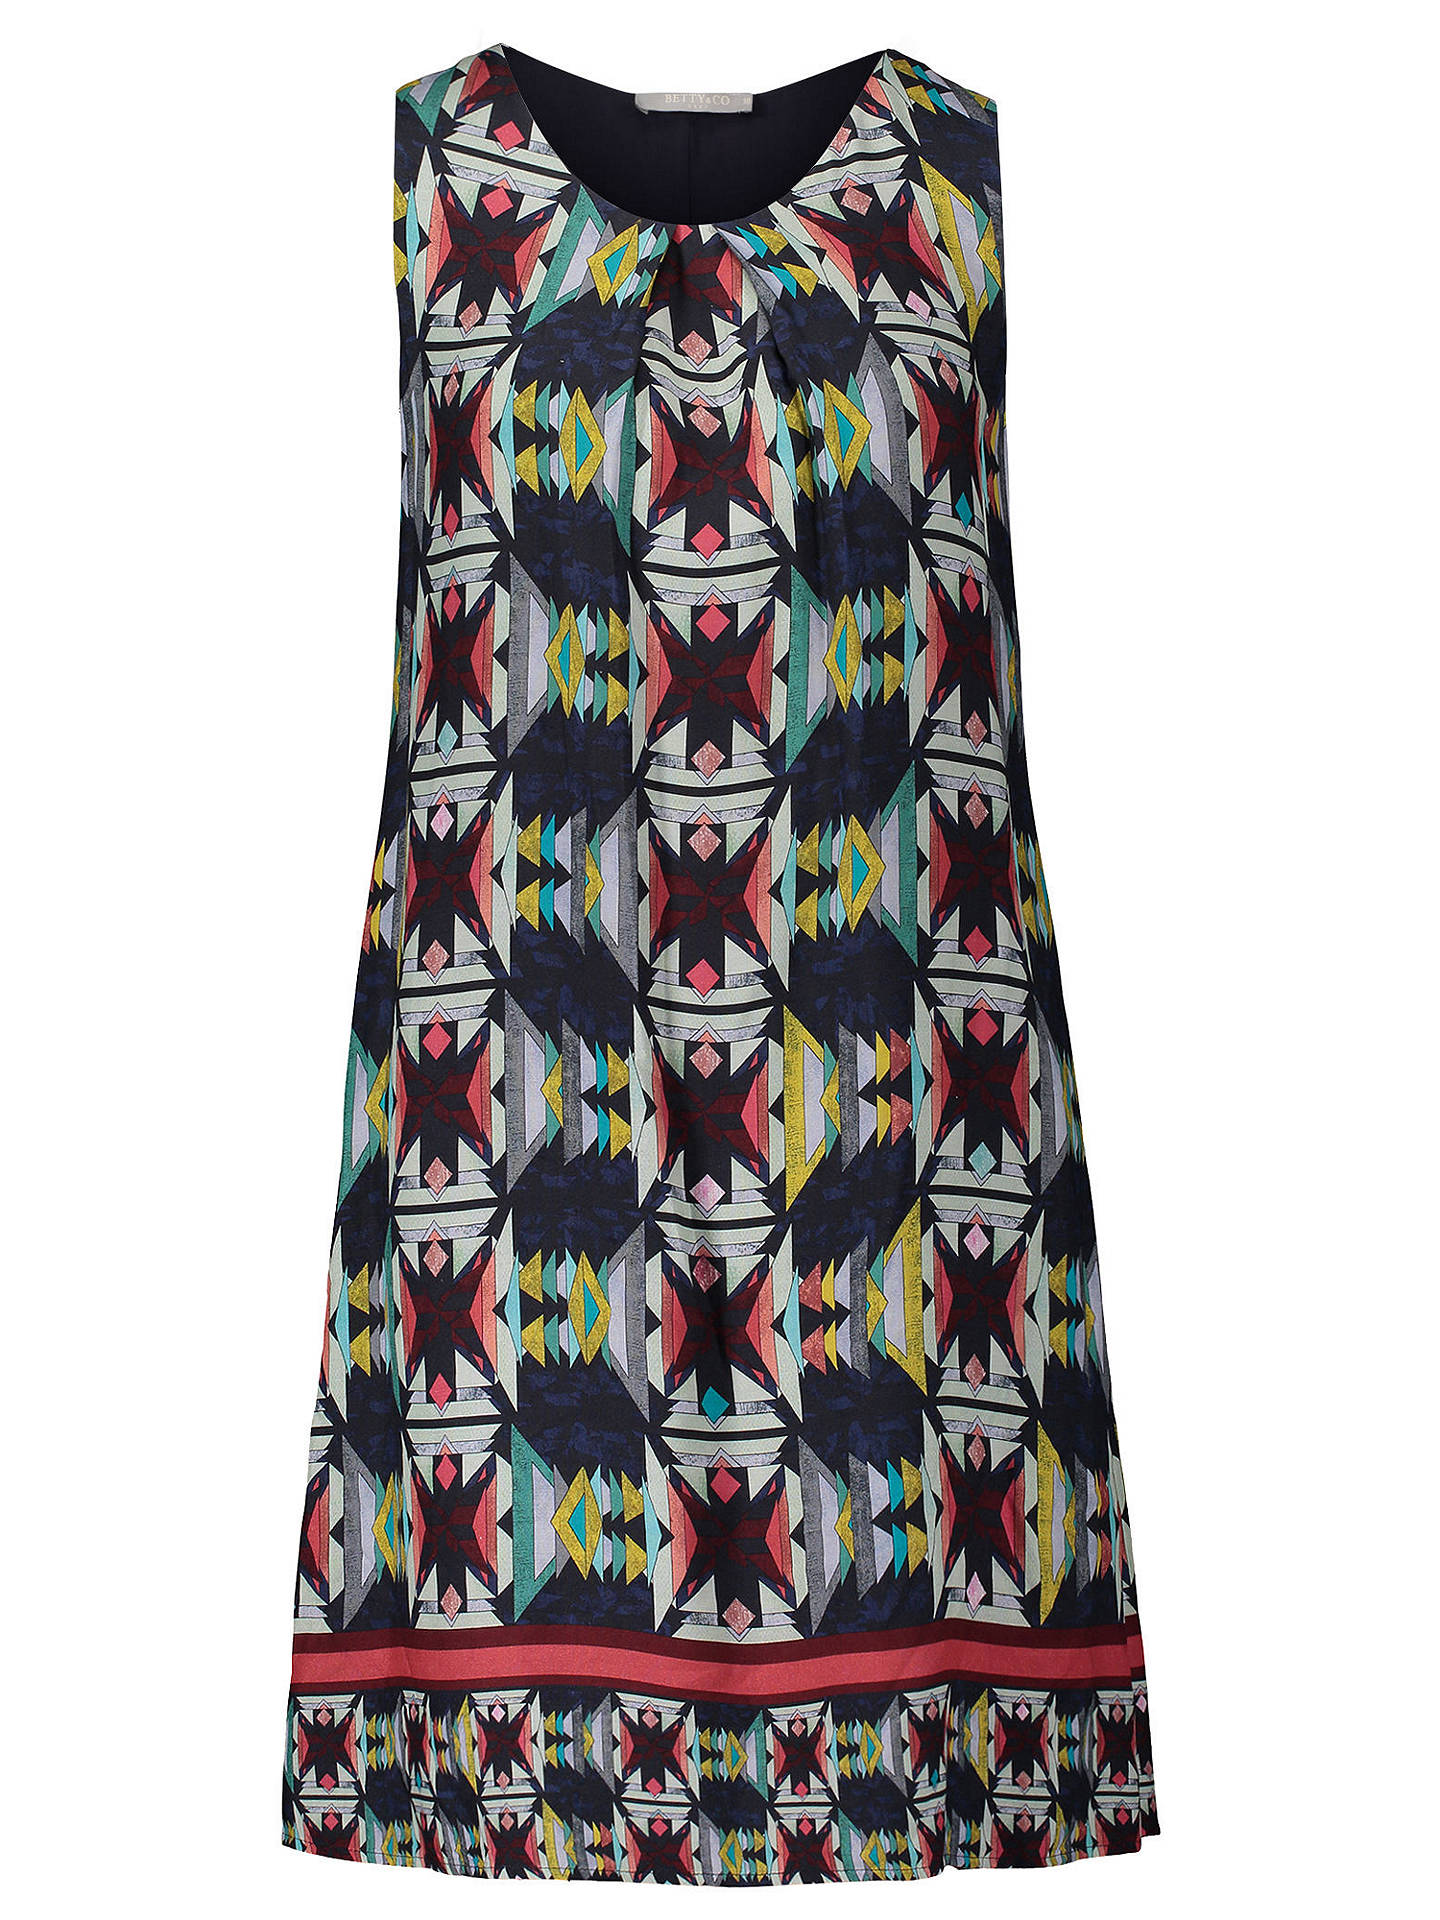 BuyBetty Barclay Graphic Print Sleeveless Dress, Multi, 10 Online at johnlewis.com